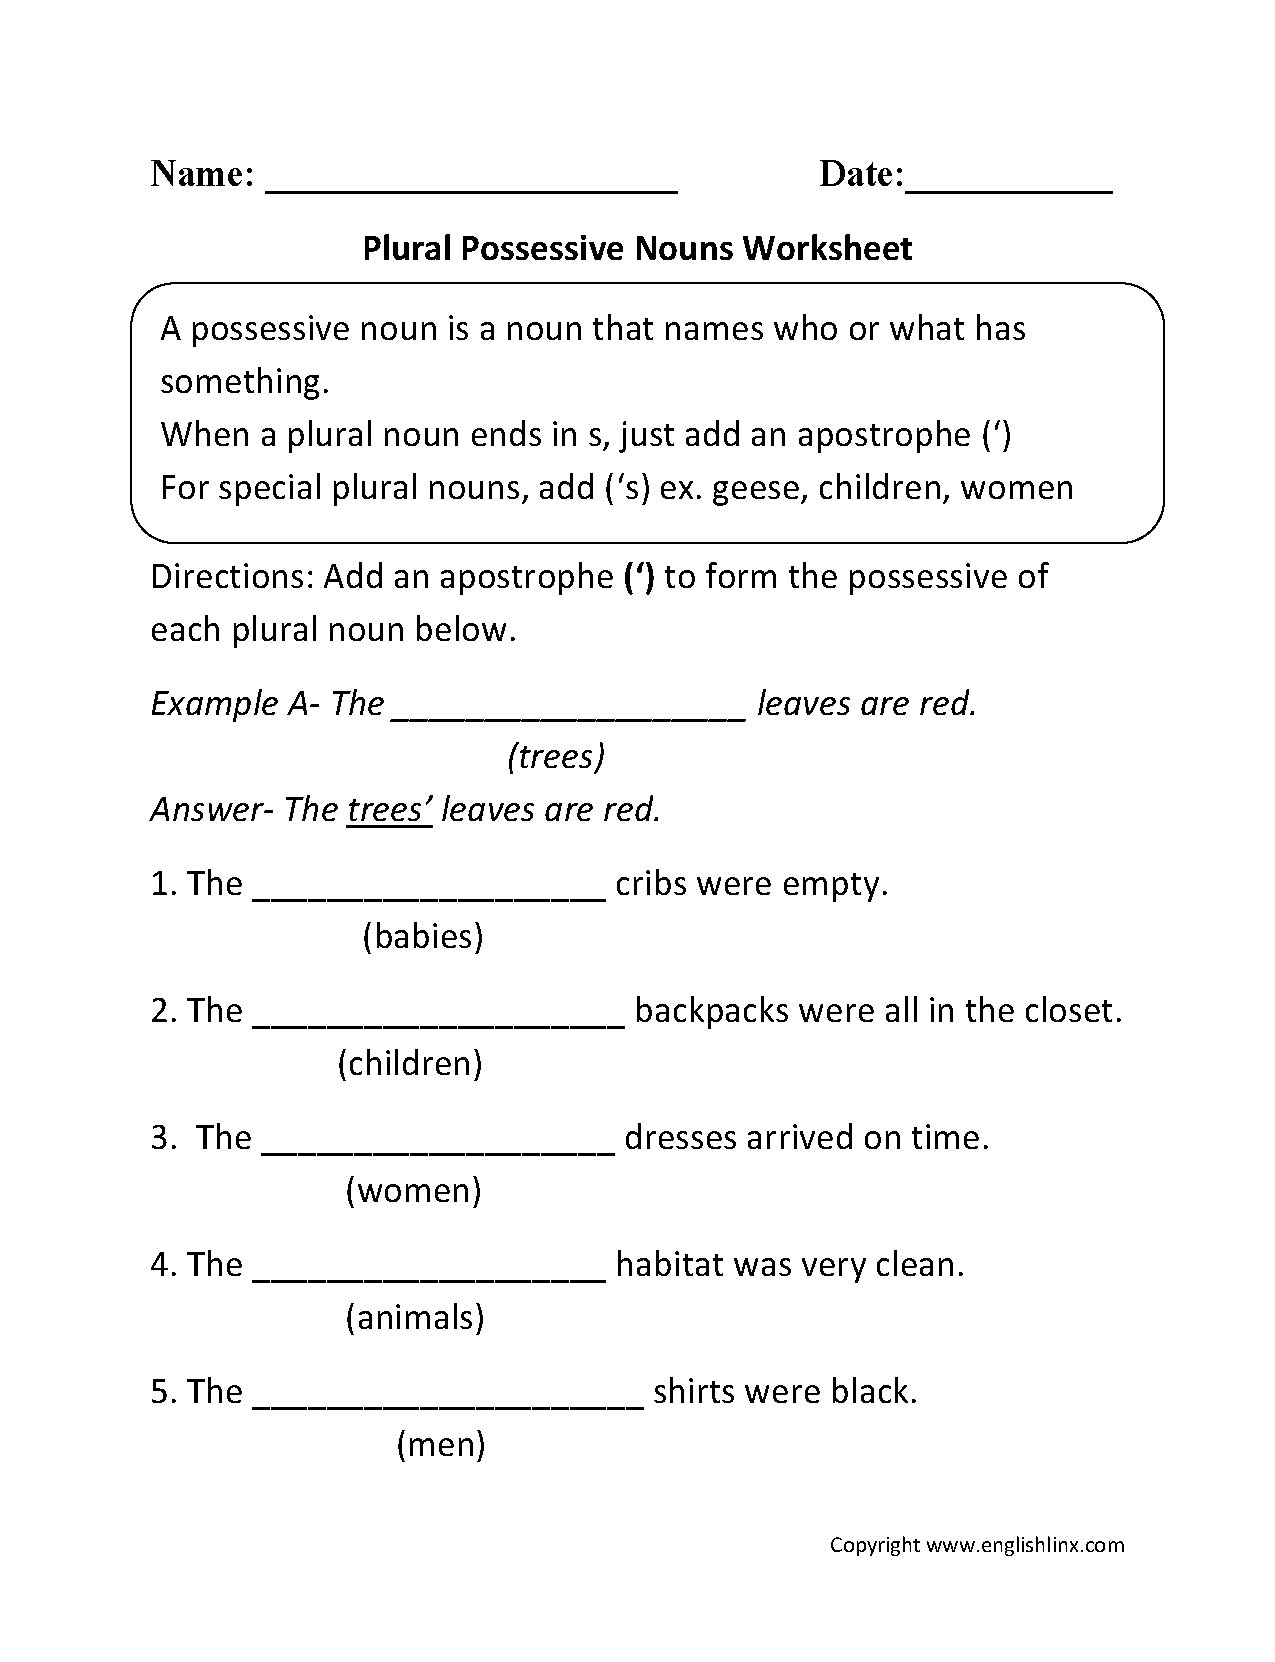 Aldiablosus  Unusual Nouns Worksheets  Possessive Nouns Worksheets With Exciting Possessive Nouns Worksheets With Endearing Honors Chemistry Worksheets Also Spanish Worksheets Elementary In Addition English Metric Conversion Worksheet And My Side Of The Mountain Worksheets As Well As Division With Remainders Worksheets Th Grade Additionally Unbalanced Forces Worksheet From Englishlinxcom With Aldiablosus  Exciting Nouns Worksheets  Possessive Nouns Worksheets With Endearing Possessive Nouns Worksheets And Unusual Honors Chemistry Worksheets Also Spanish Worksheets Elementary In Addition English Metric Conversion Worksheet From Englishlinxcom